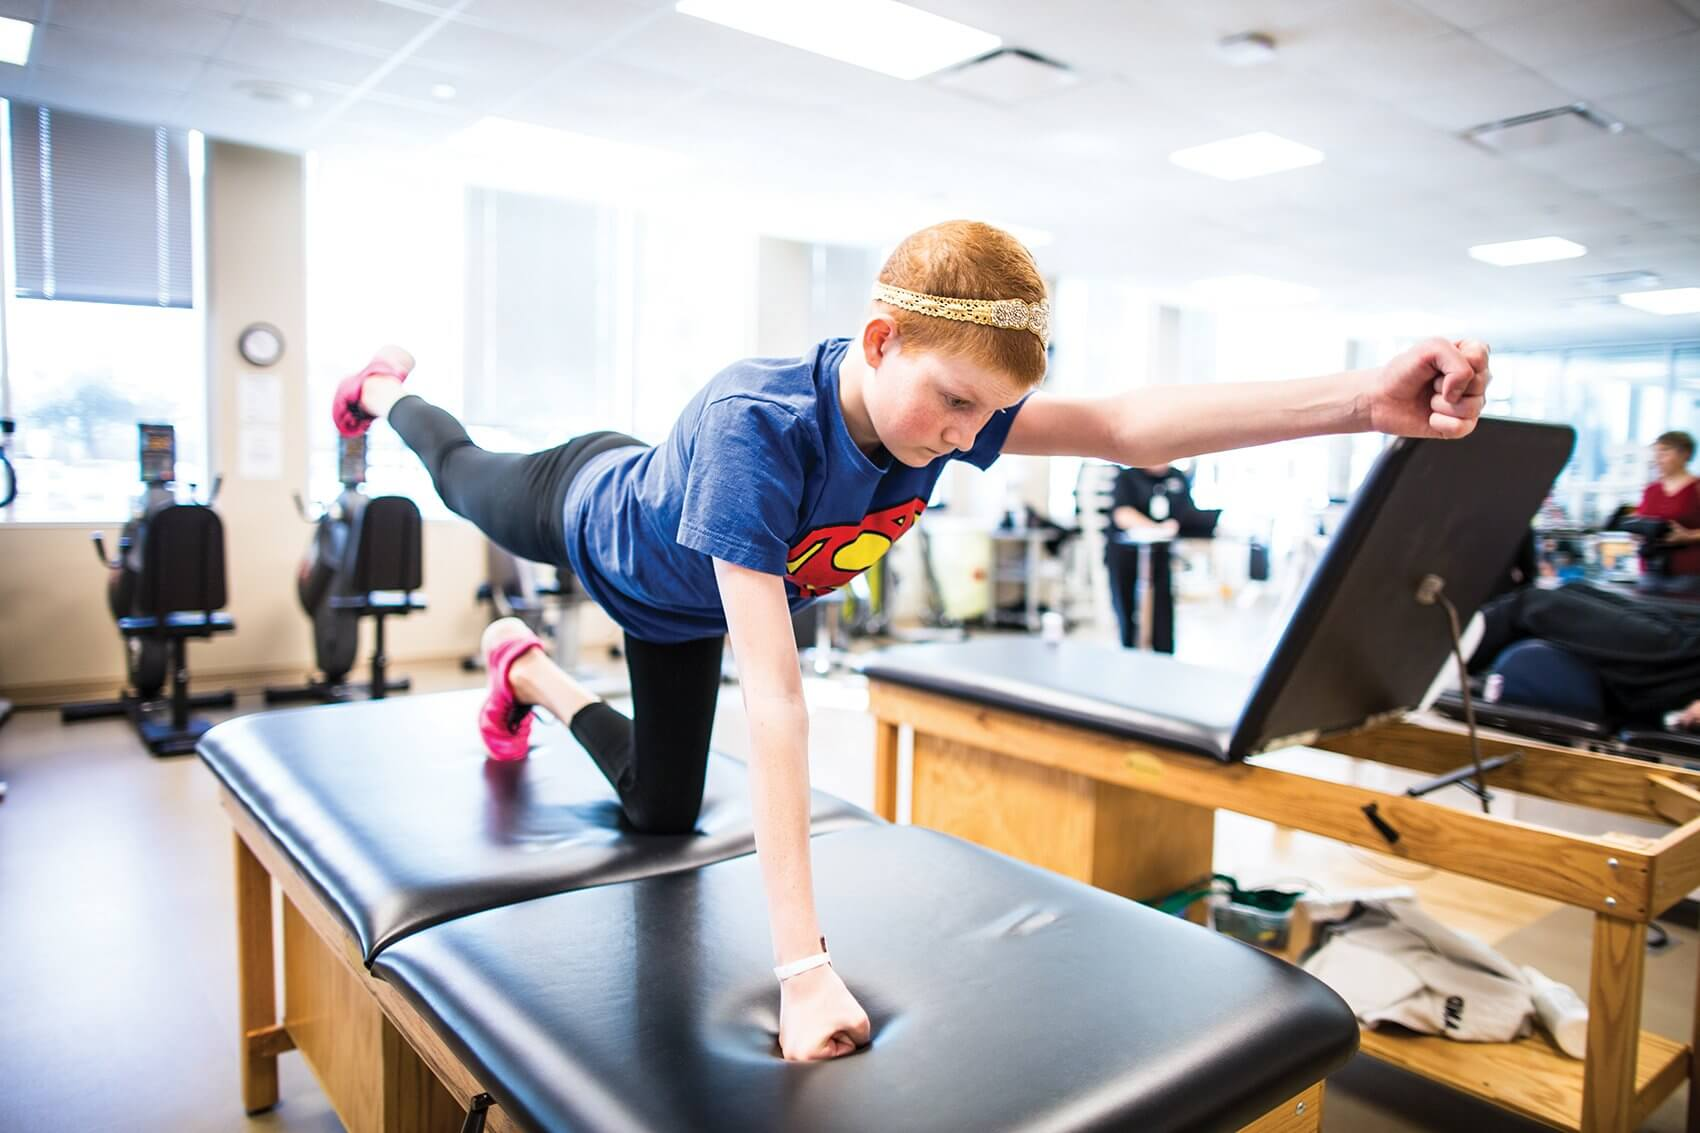 After a severe reaction to methotrexate, Peyton began physical therapy to regain strength and mobility.